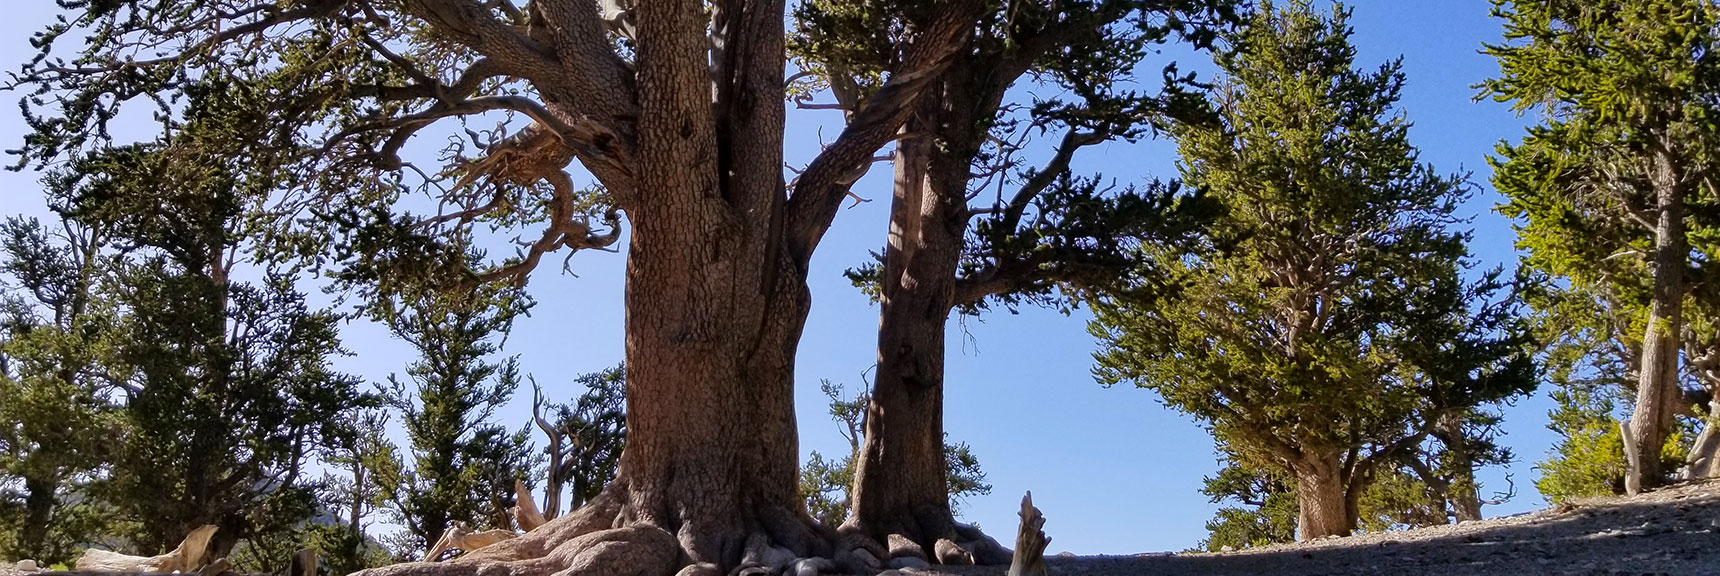 Looking Back at Rain Tree Before Heading to Mummy Springs in Mt. Charleston Wilderness, Nevada